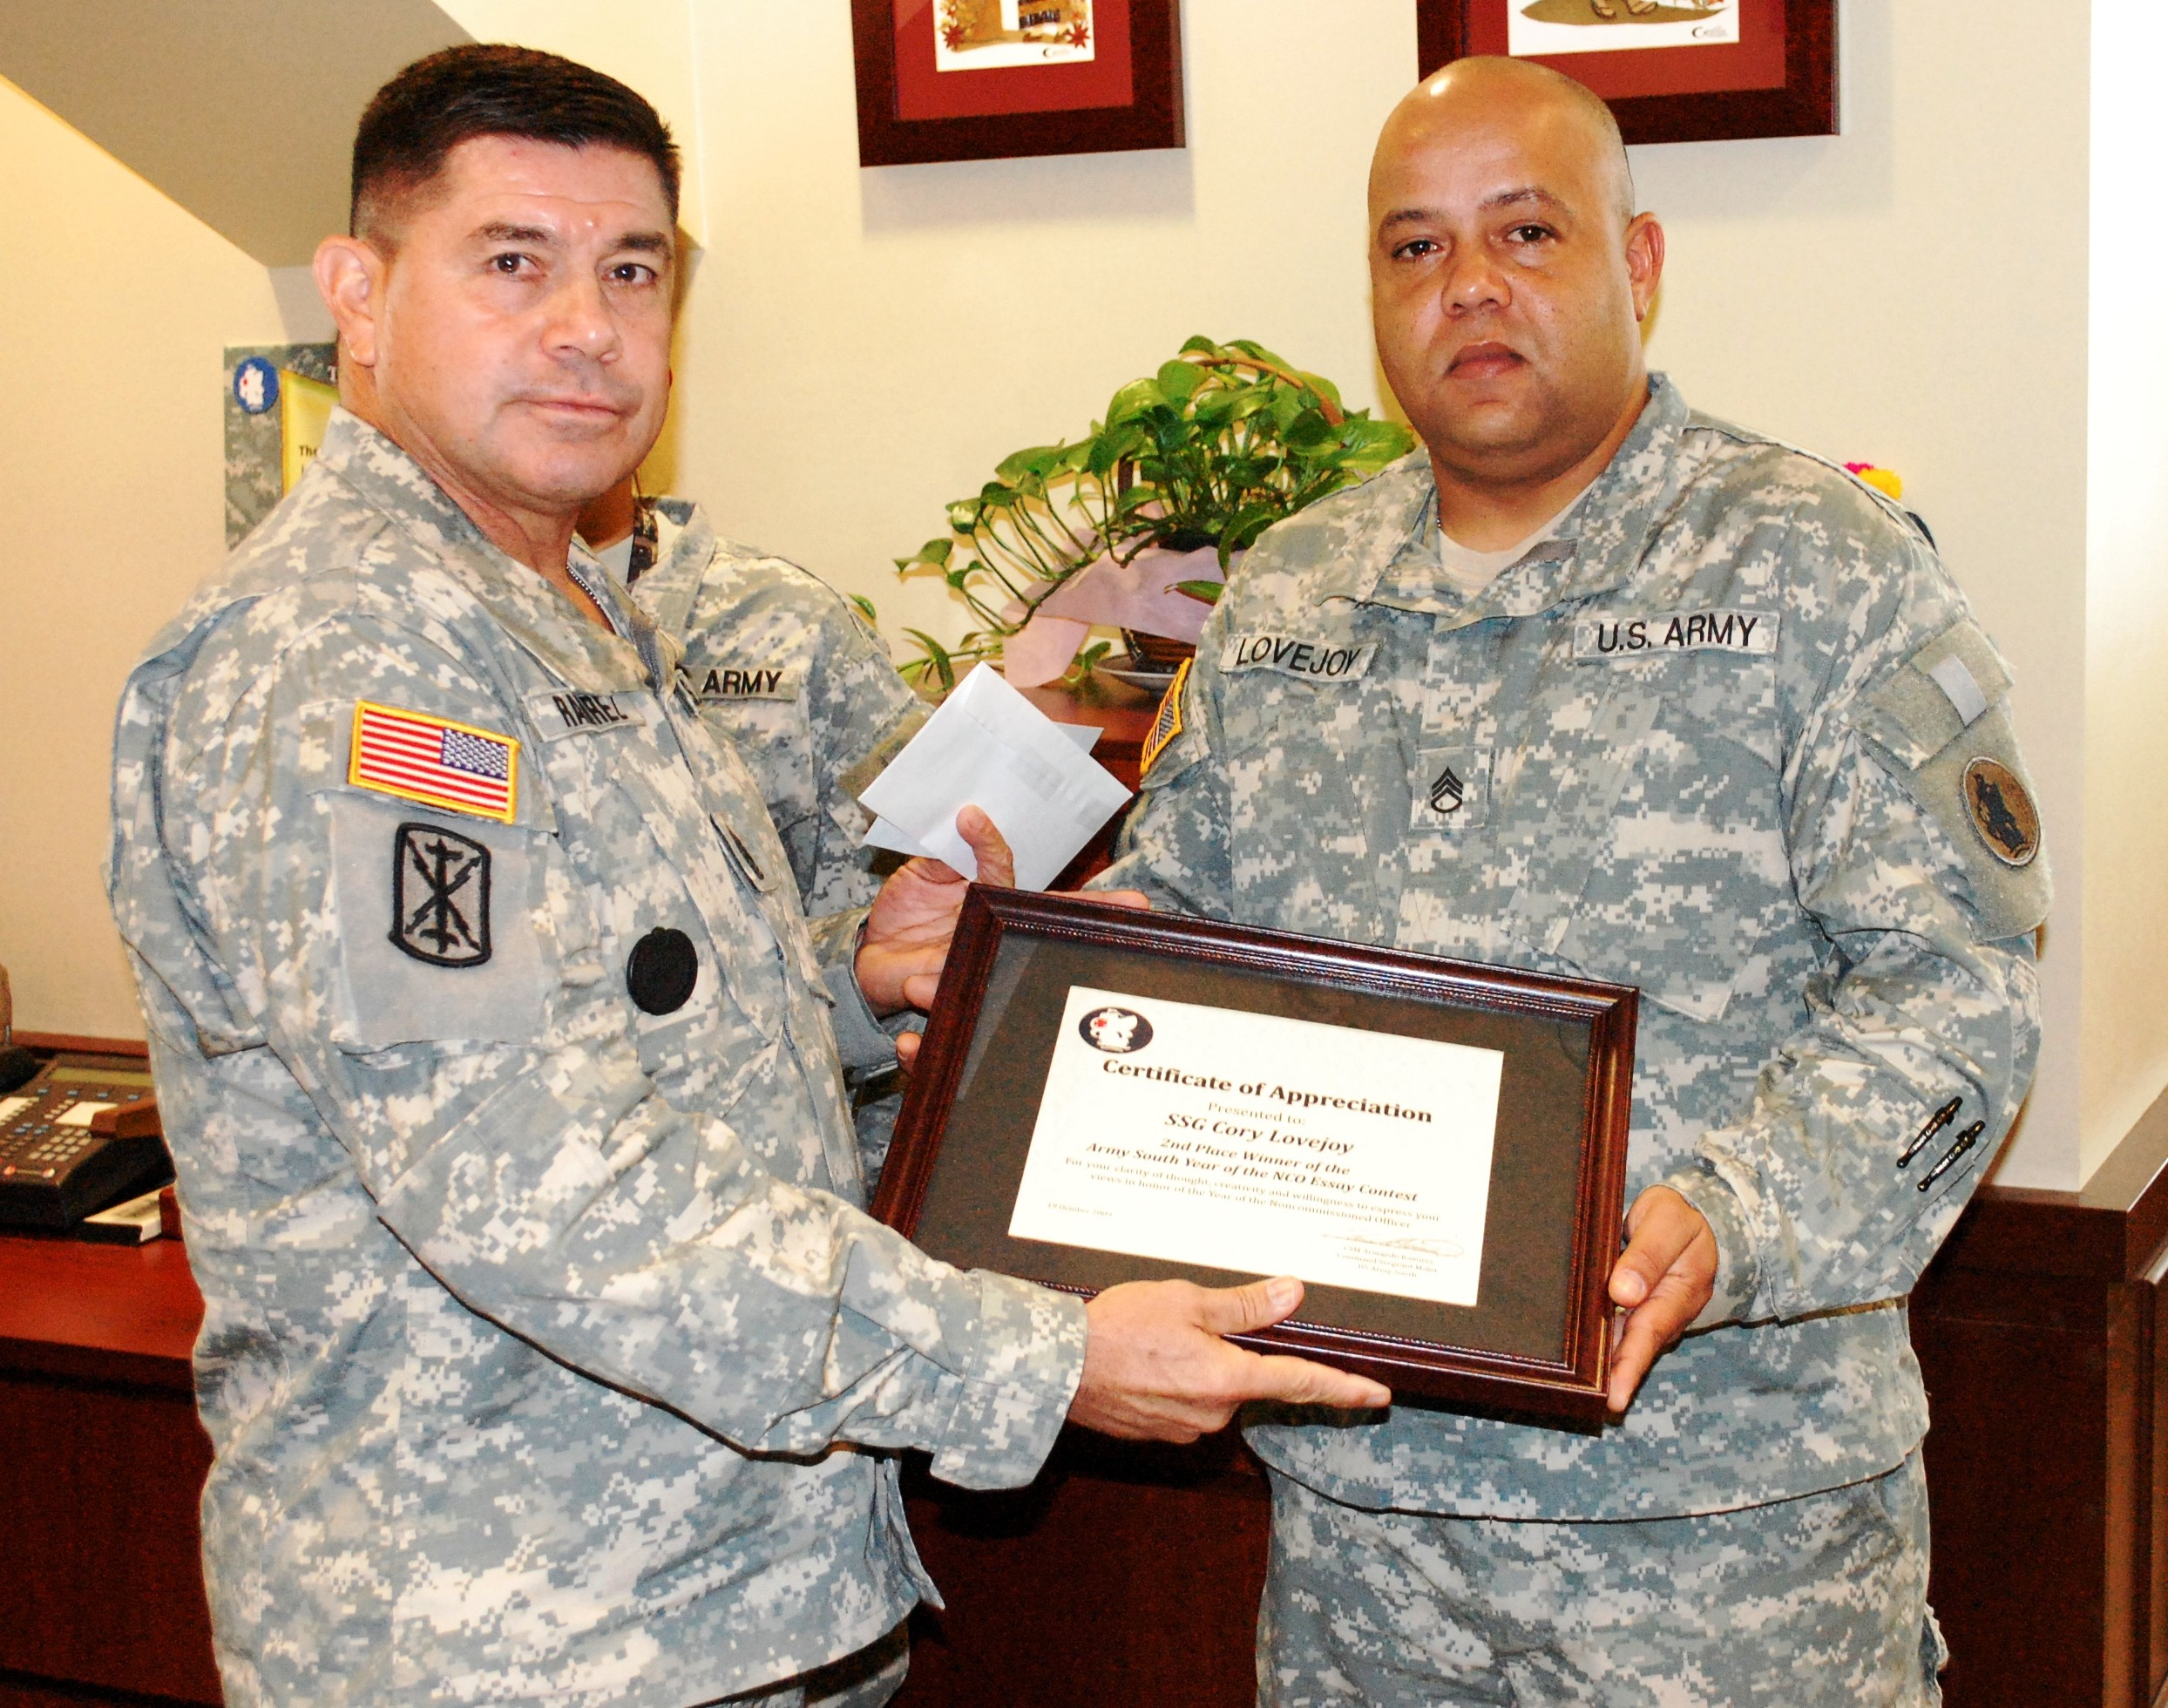 u s south s year of the nco essay article the united  armando ramirez for his year of the nco essay photo credit sgm rick black u s south public affairs